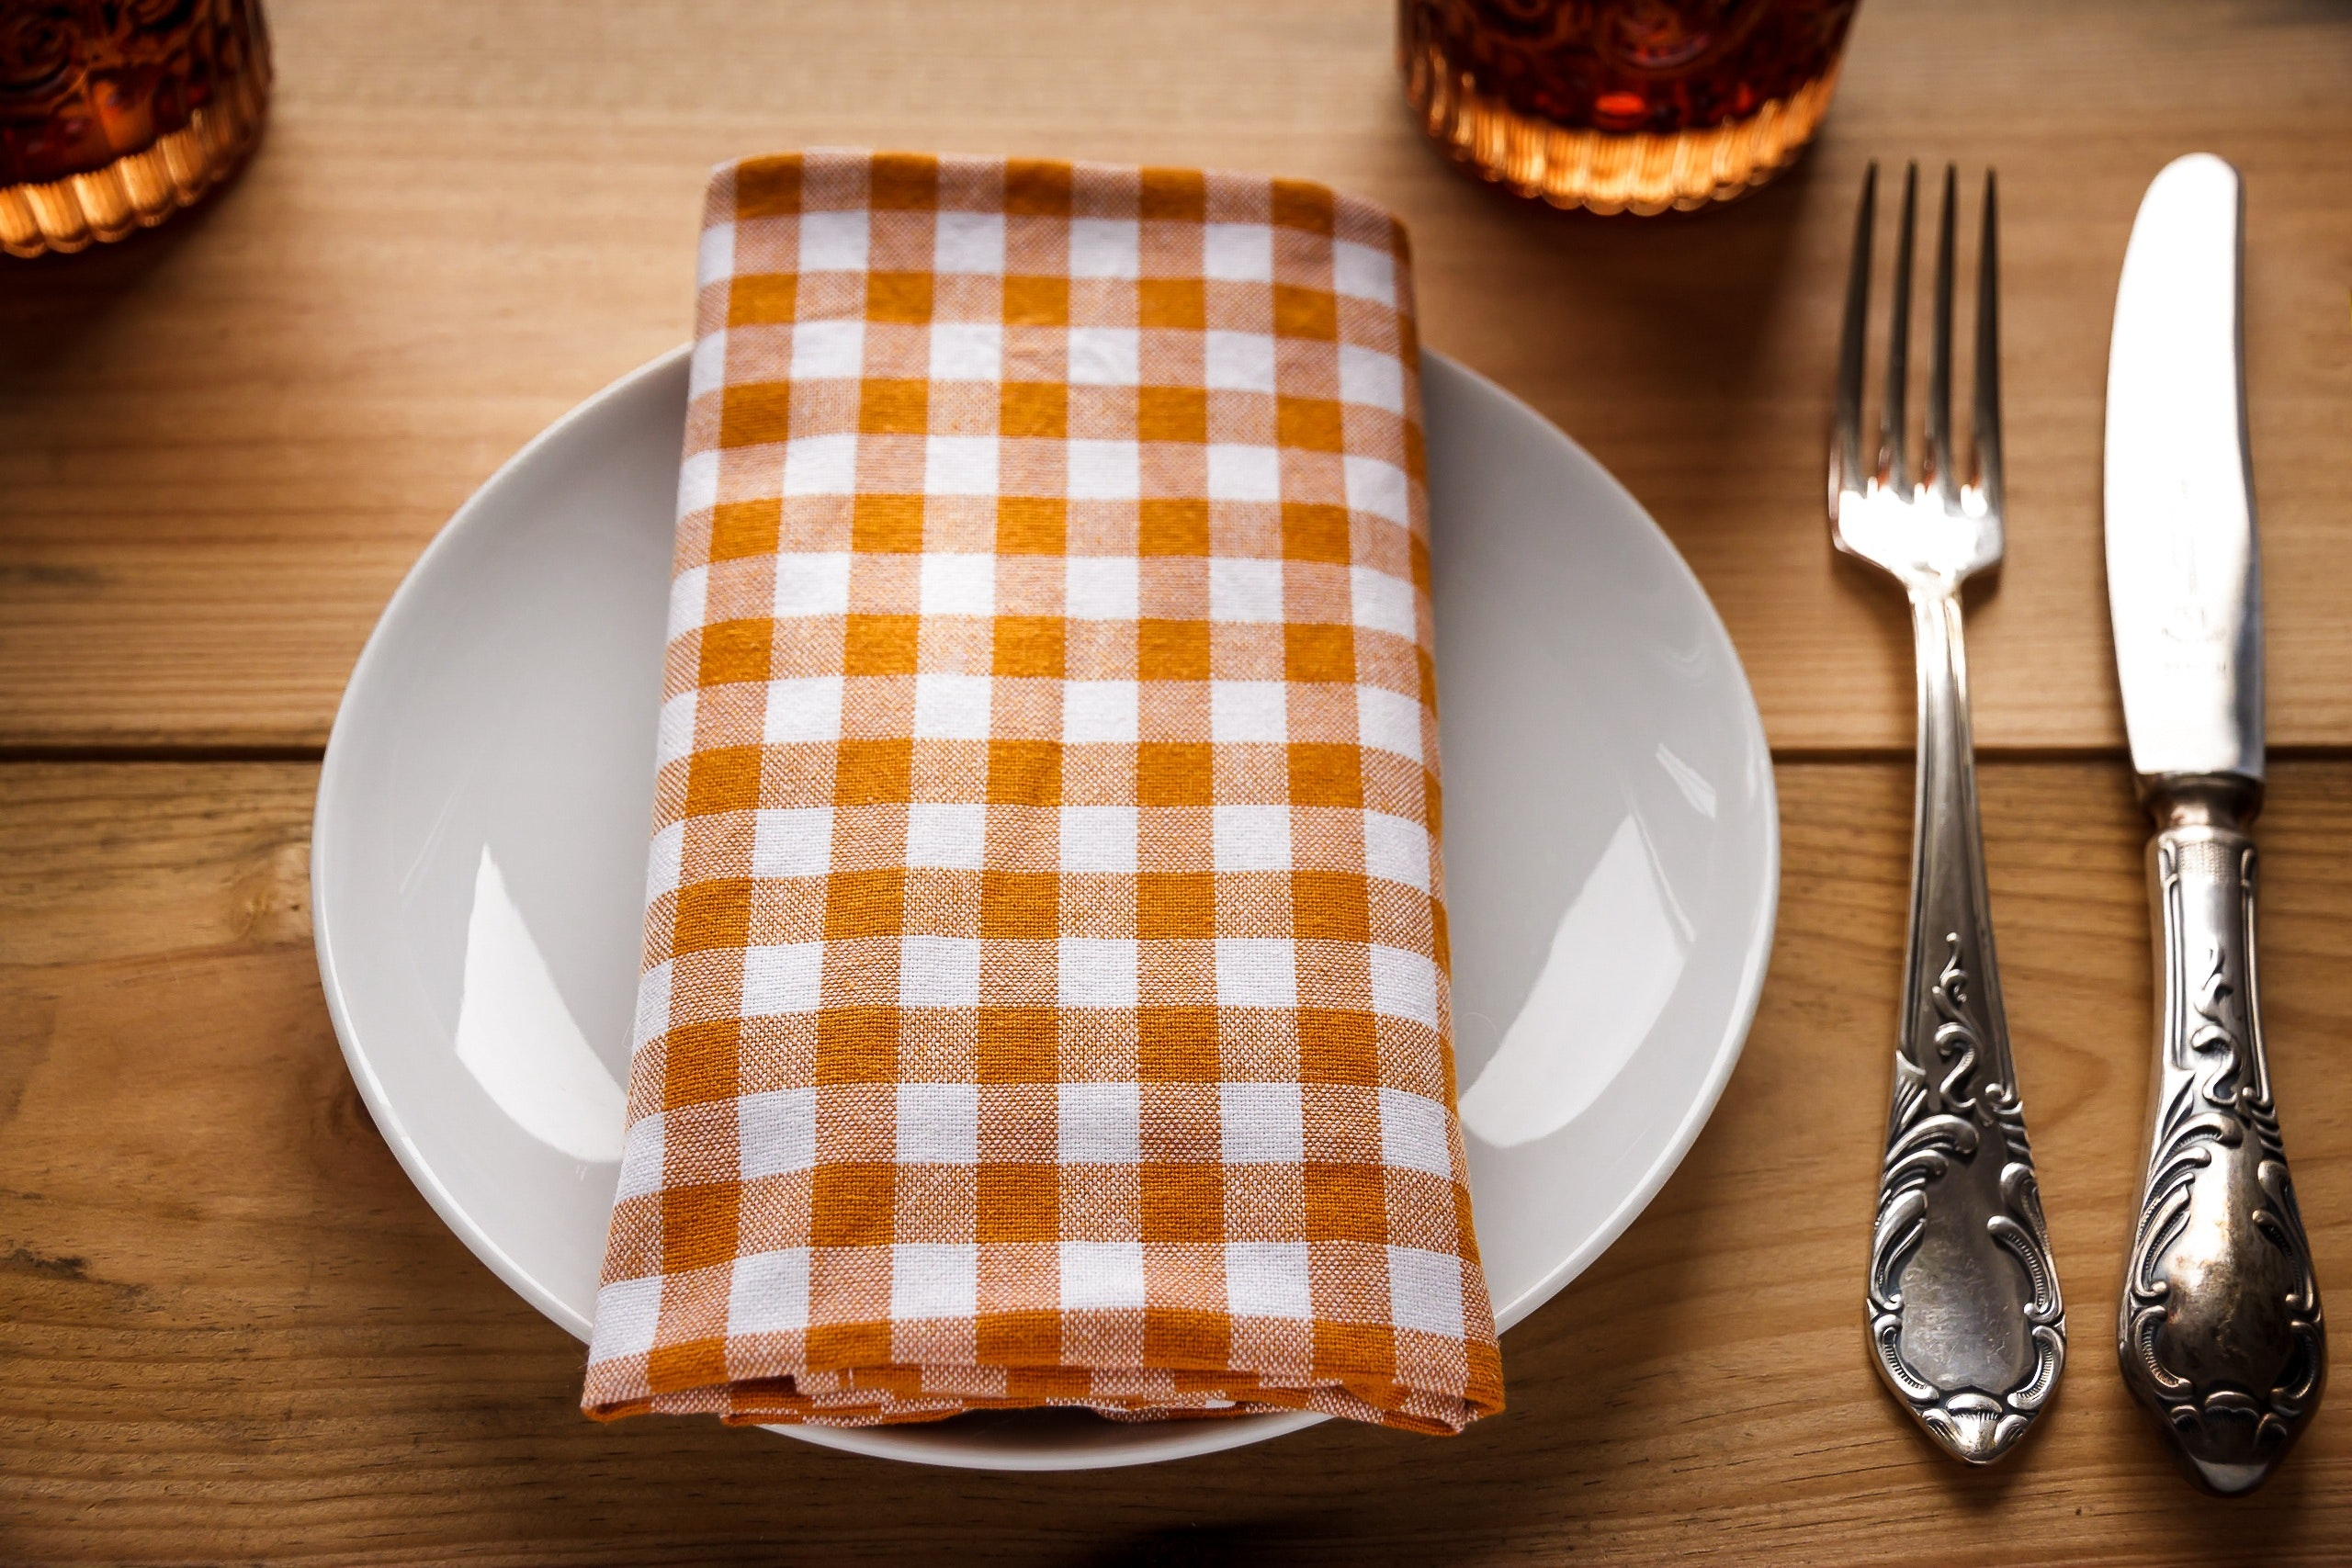 cutlery-dining-room-flatware-fork-269264